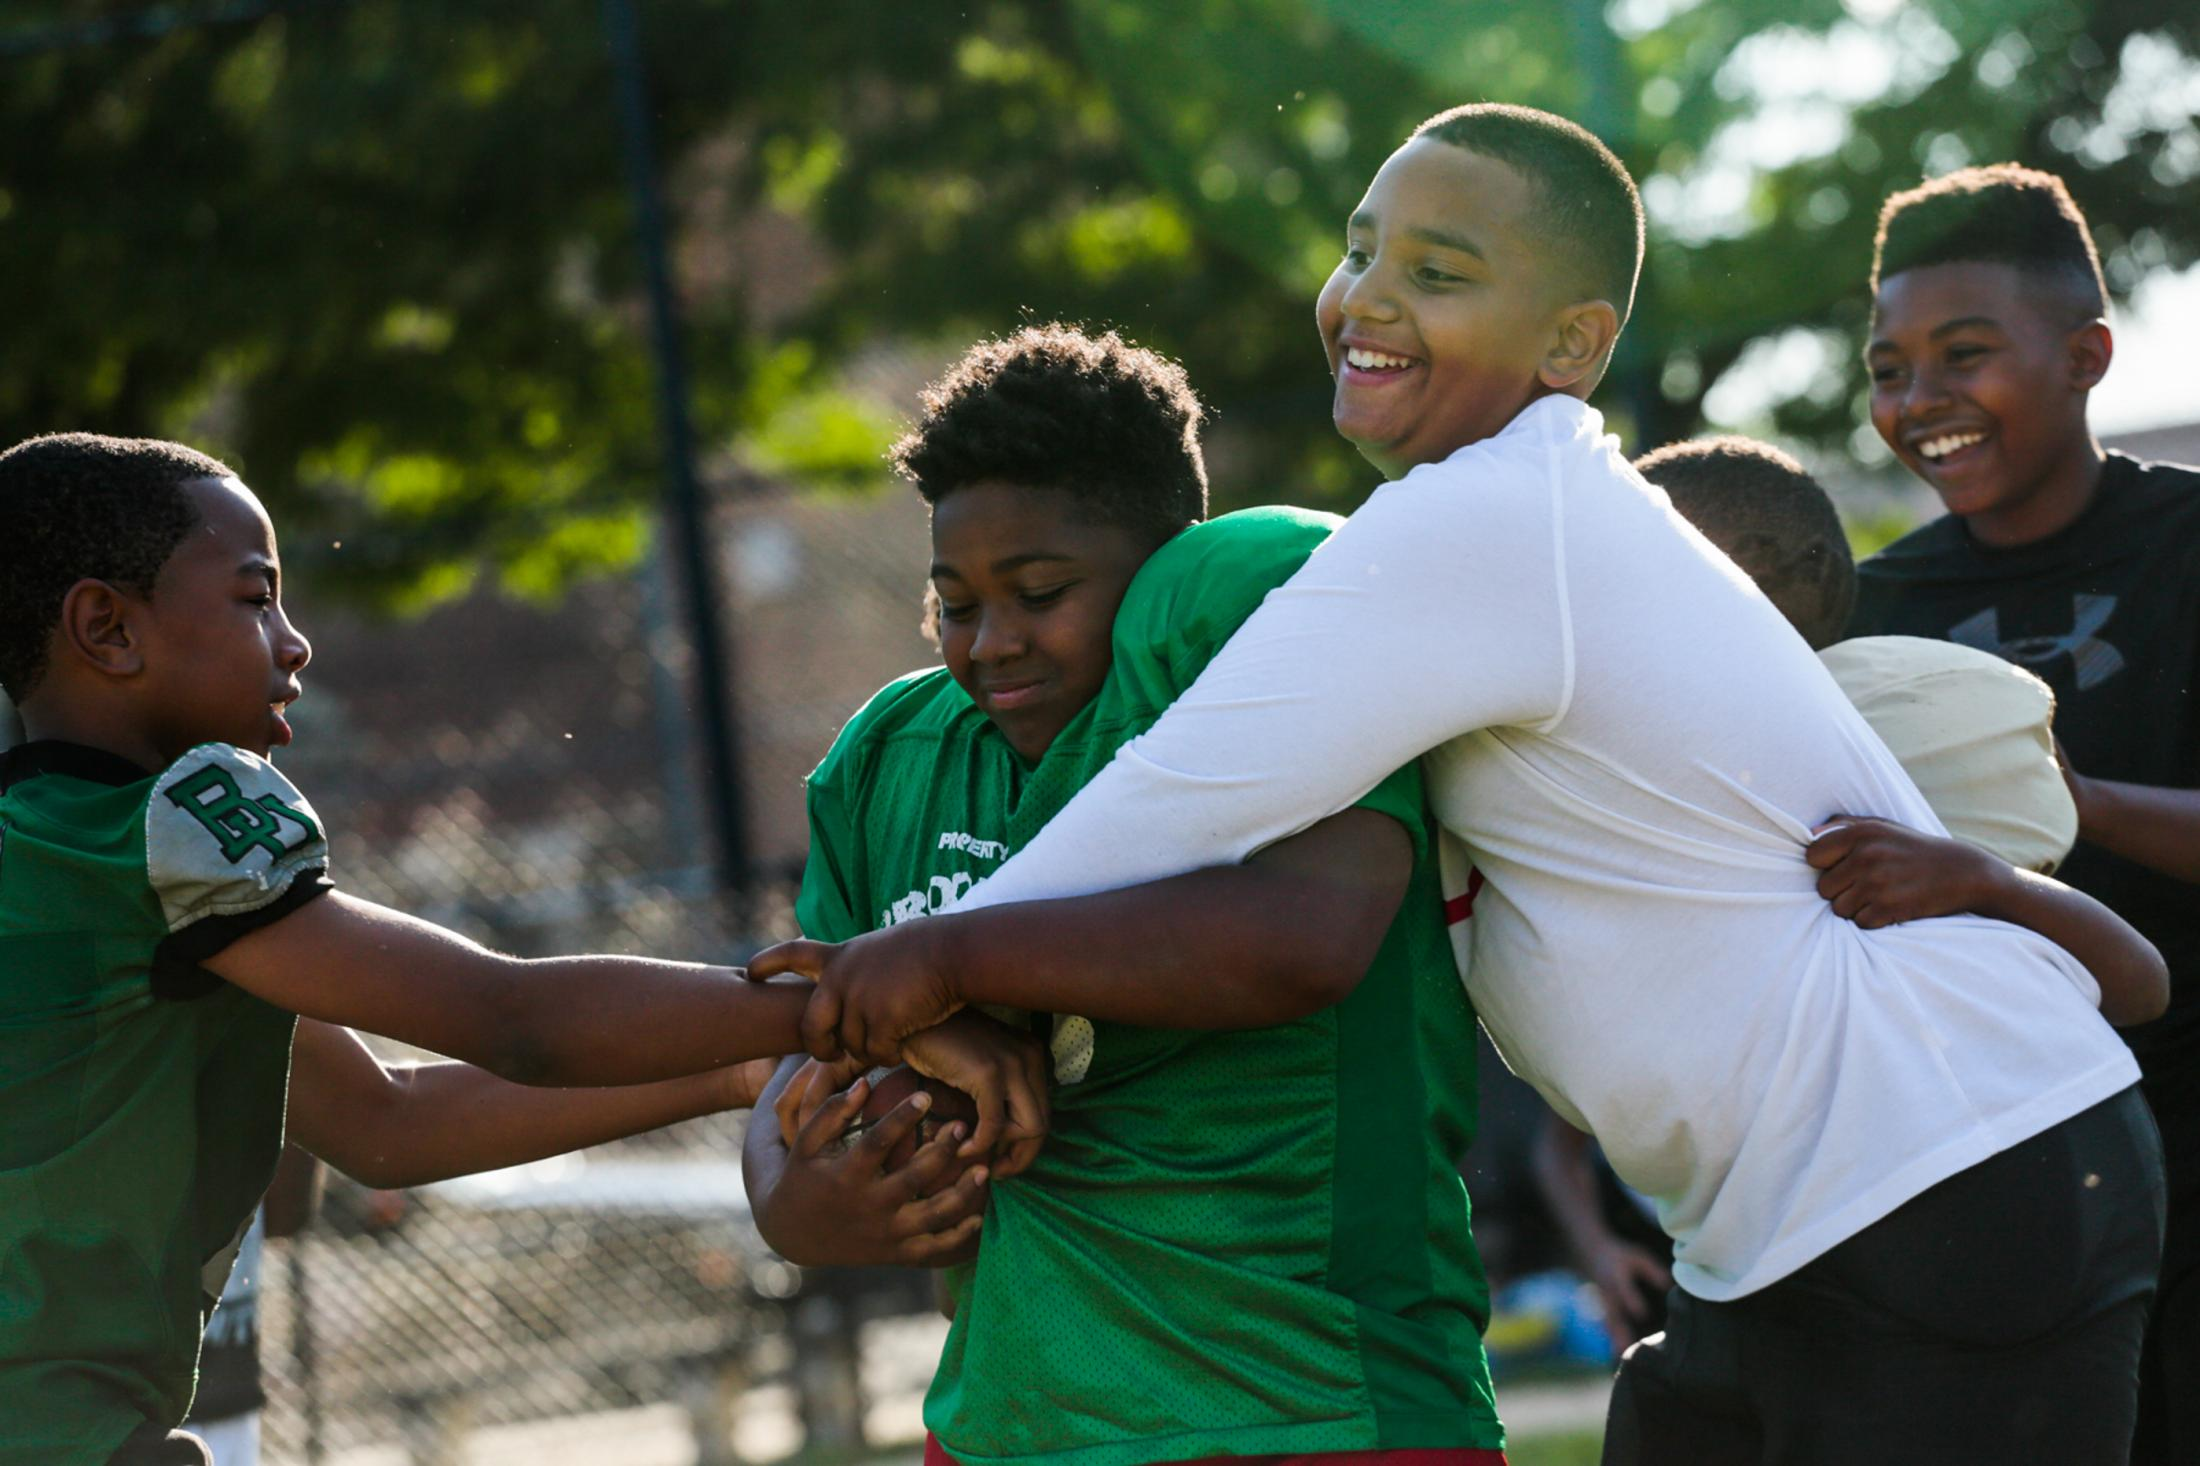 From left to right: Reid Jones, Josaih Howard, Asani Low, and Dollar Beamon try to tackle a football during practice at the Floyd Patterson Field in Brownsville, NY. The Brooklyn United Youth Football League received a $5,000 Play Ball Grant which will be used to fund and develop football programs for Brownsville youth.